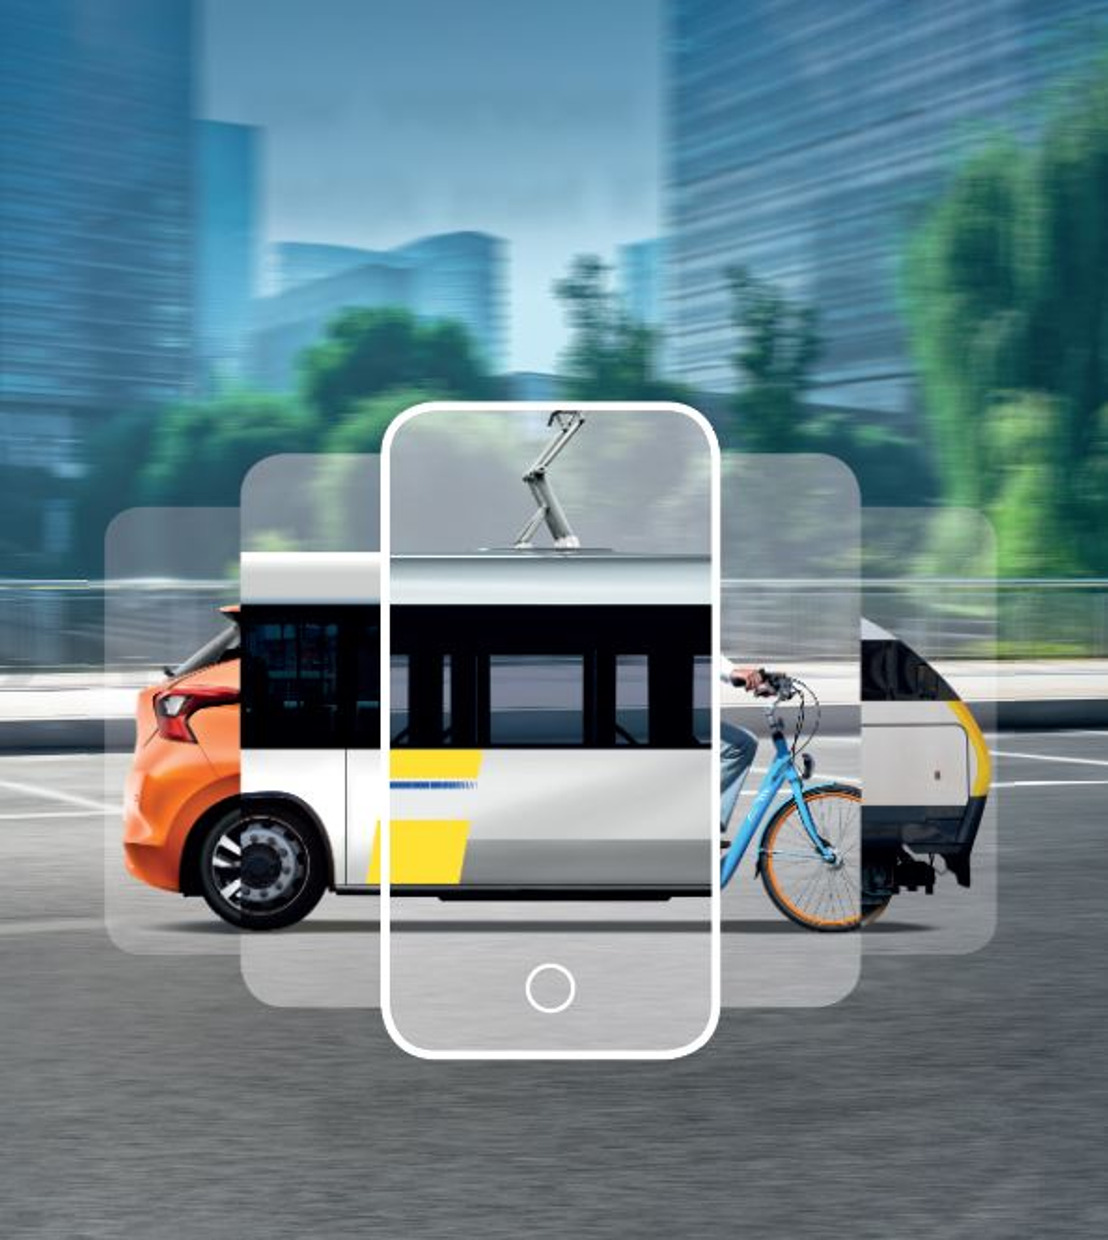 New handy solutions in KBC Mobile for those travelling by car or public transport